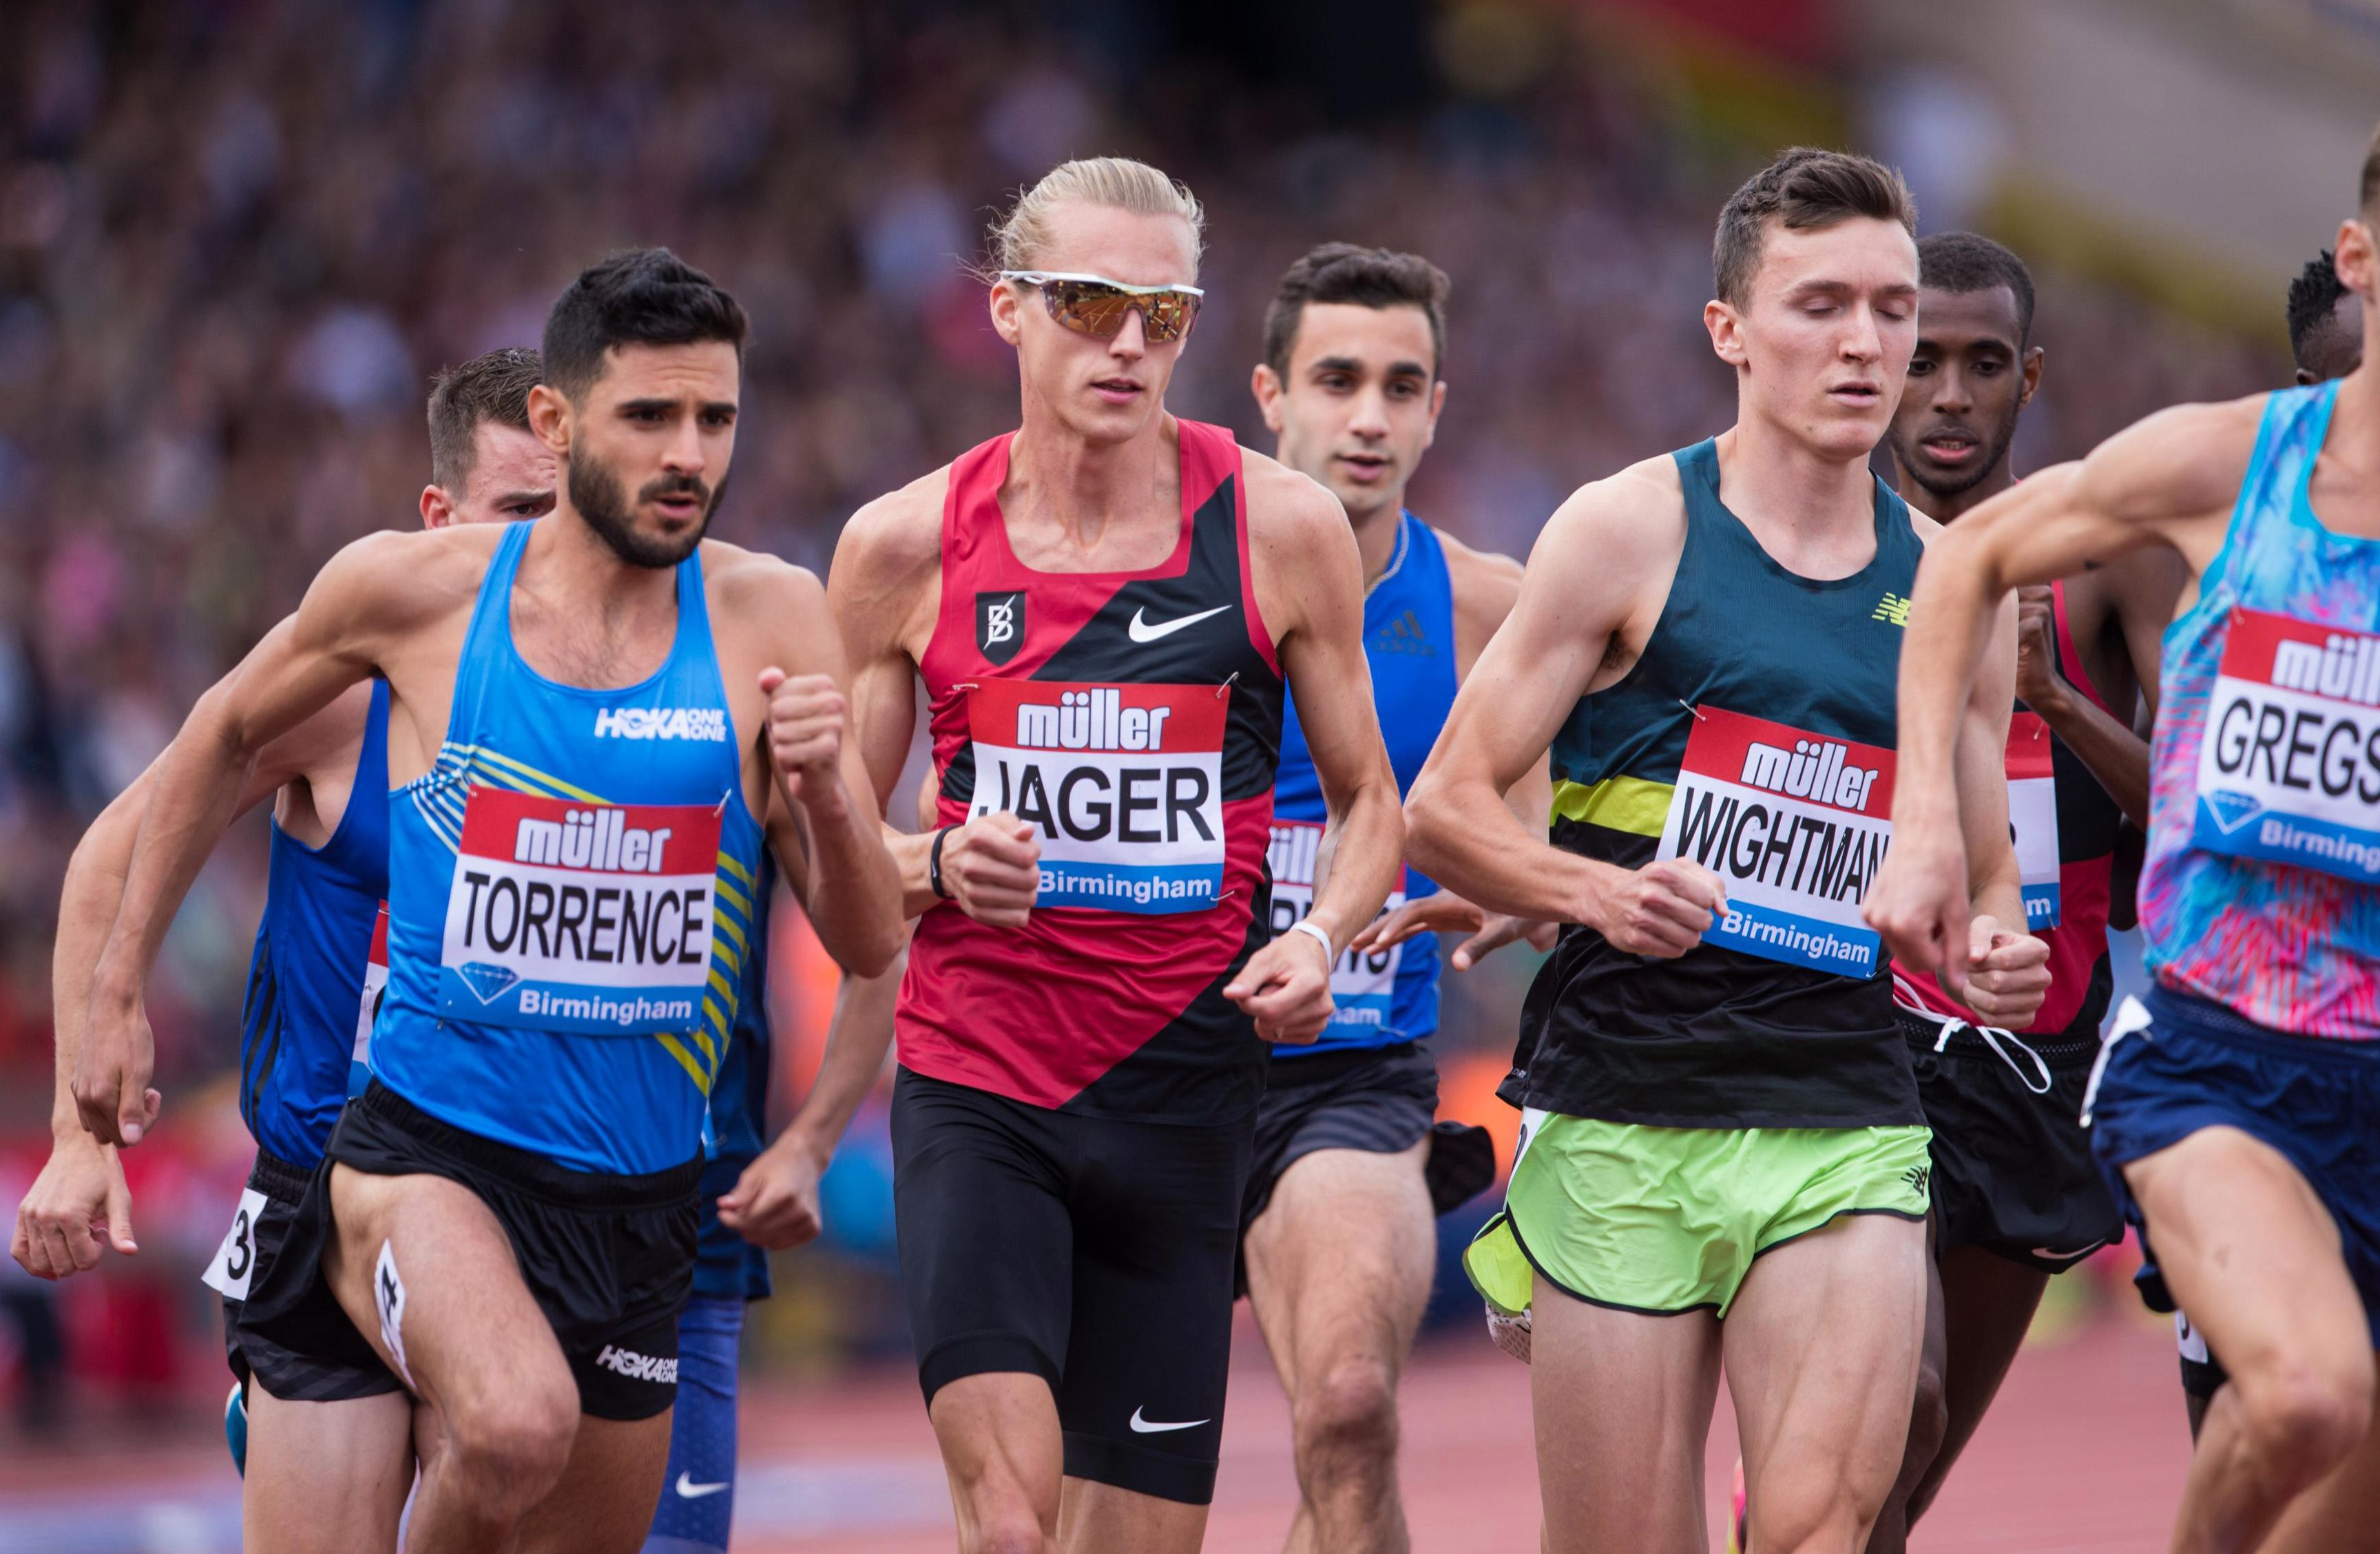 David Torrence had only recently moved to Arizona